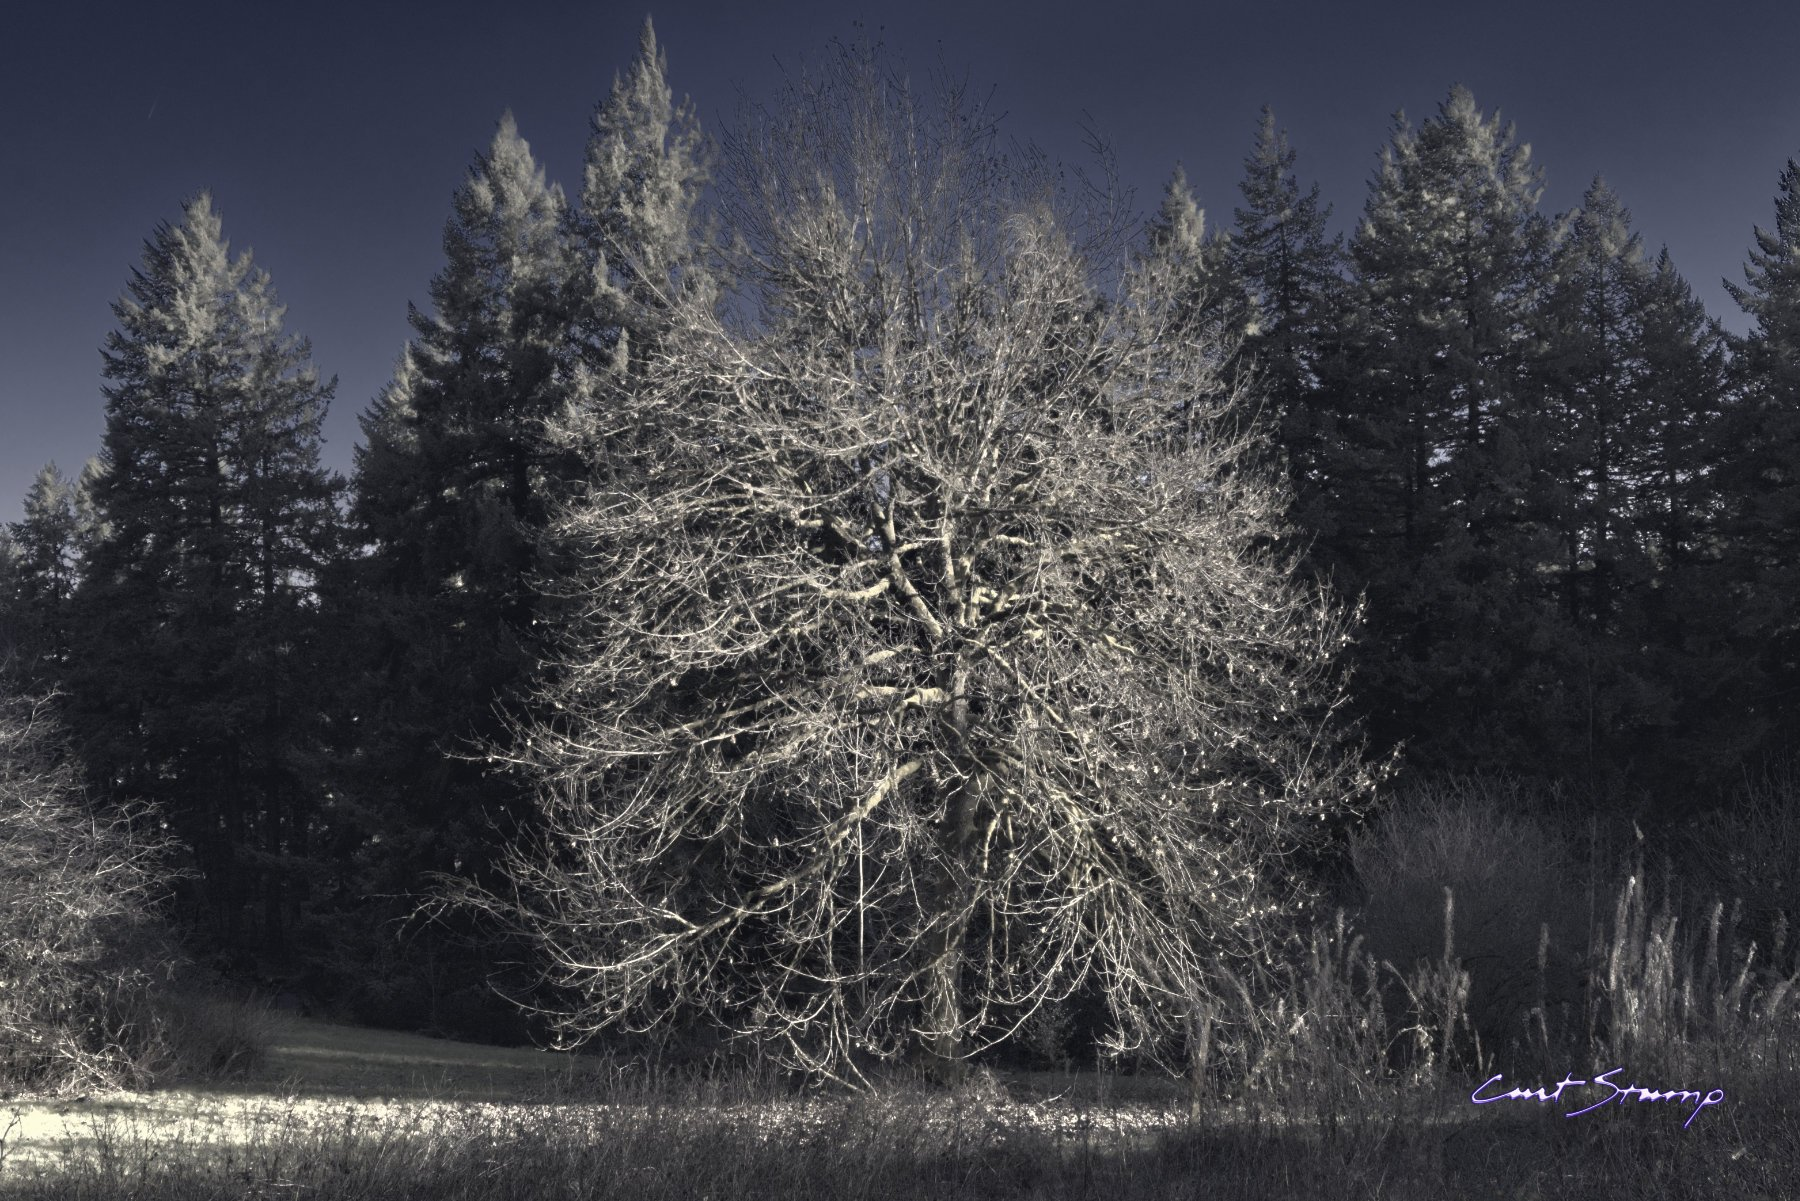 Photo of a majestic tree in winter with no leaves, against a background of tall evergreen trees. Location: Mount Tabor Park, Portland, Oregon.